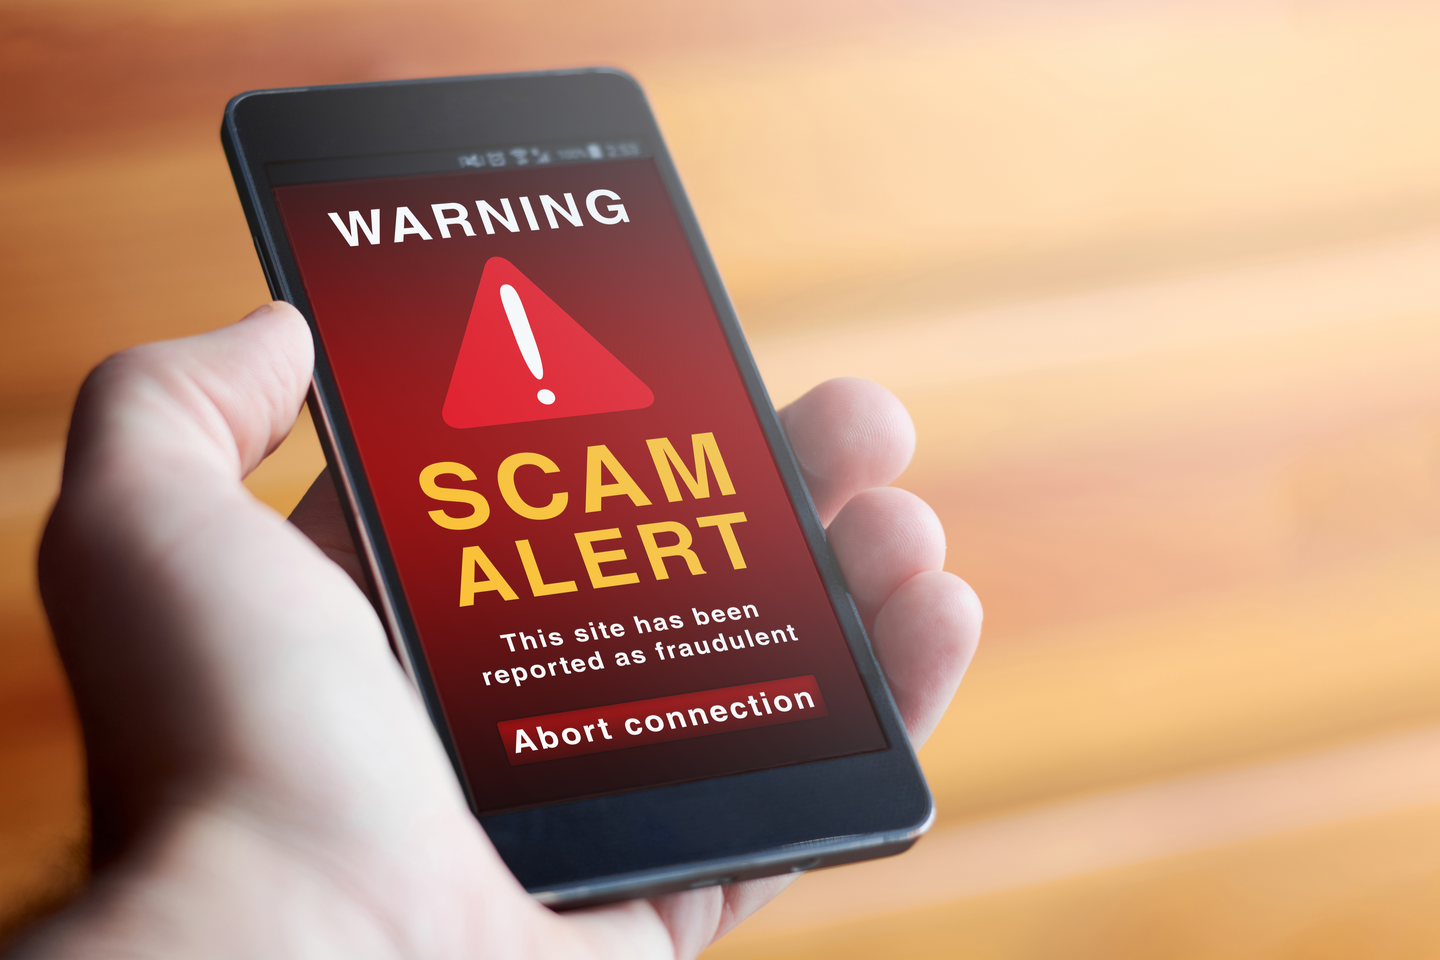 Scam alerts on cellphone